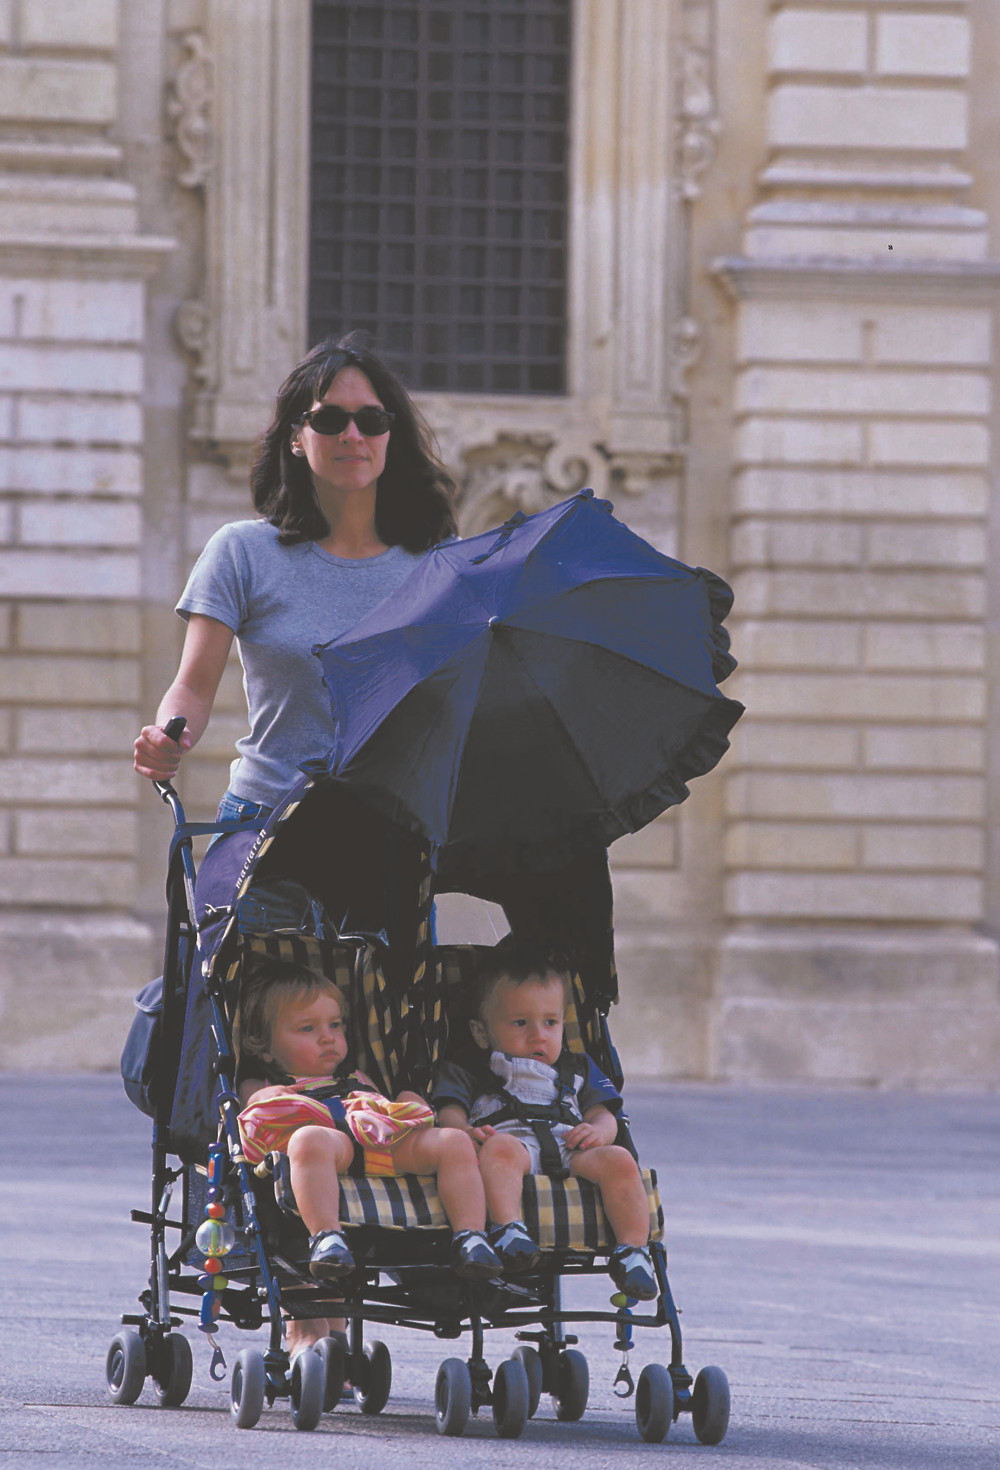 Pushing a double buggy around a piazza in Italy